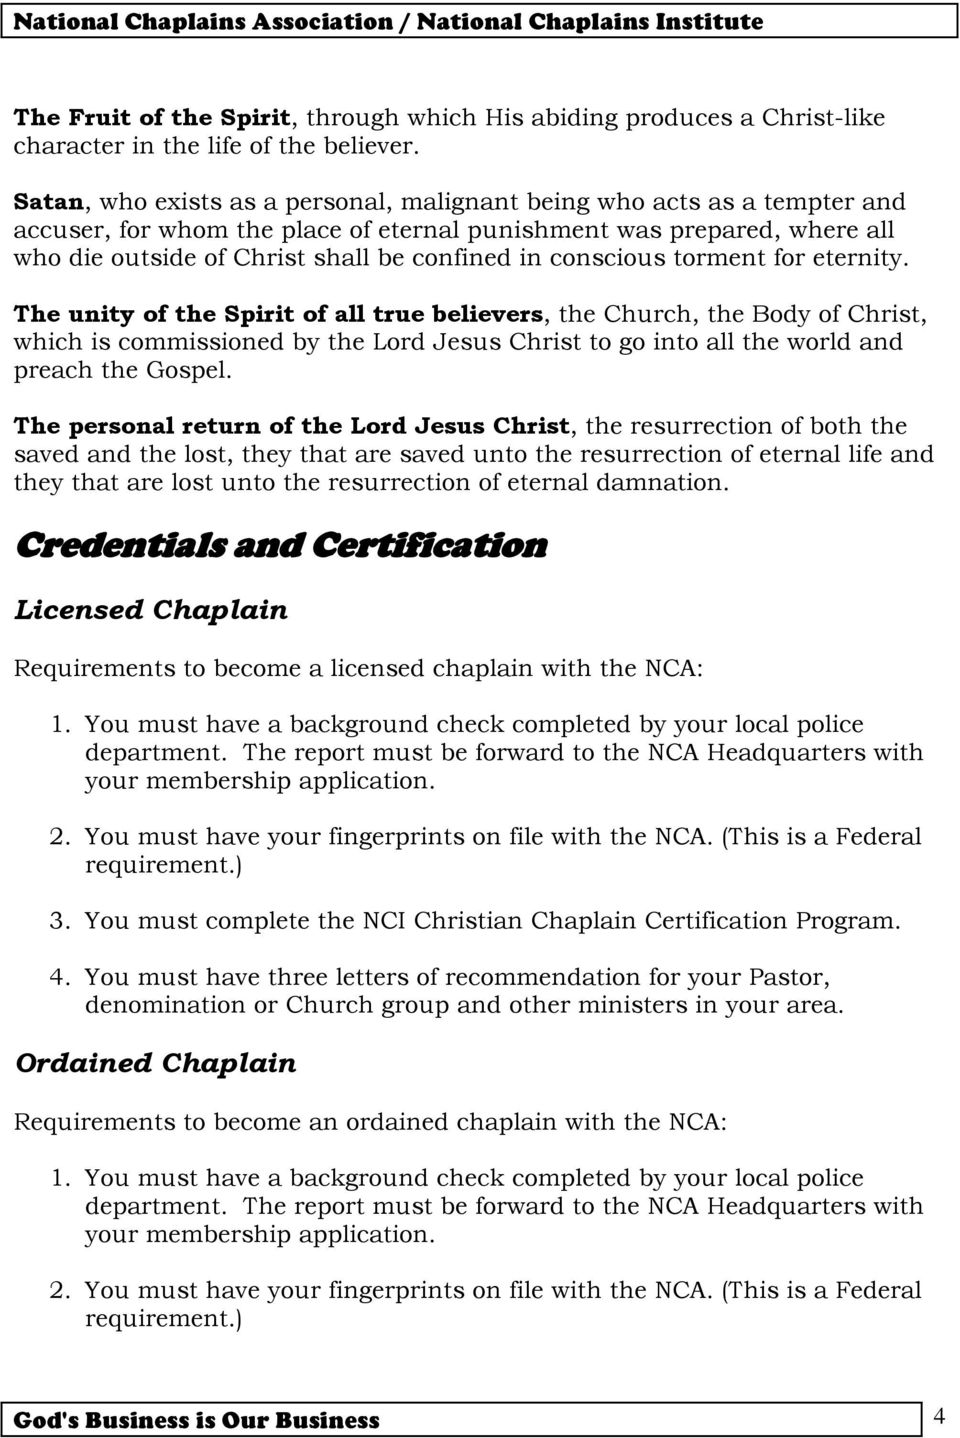 Become A Certified Christian Chaplain Pdf